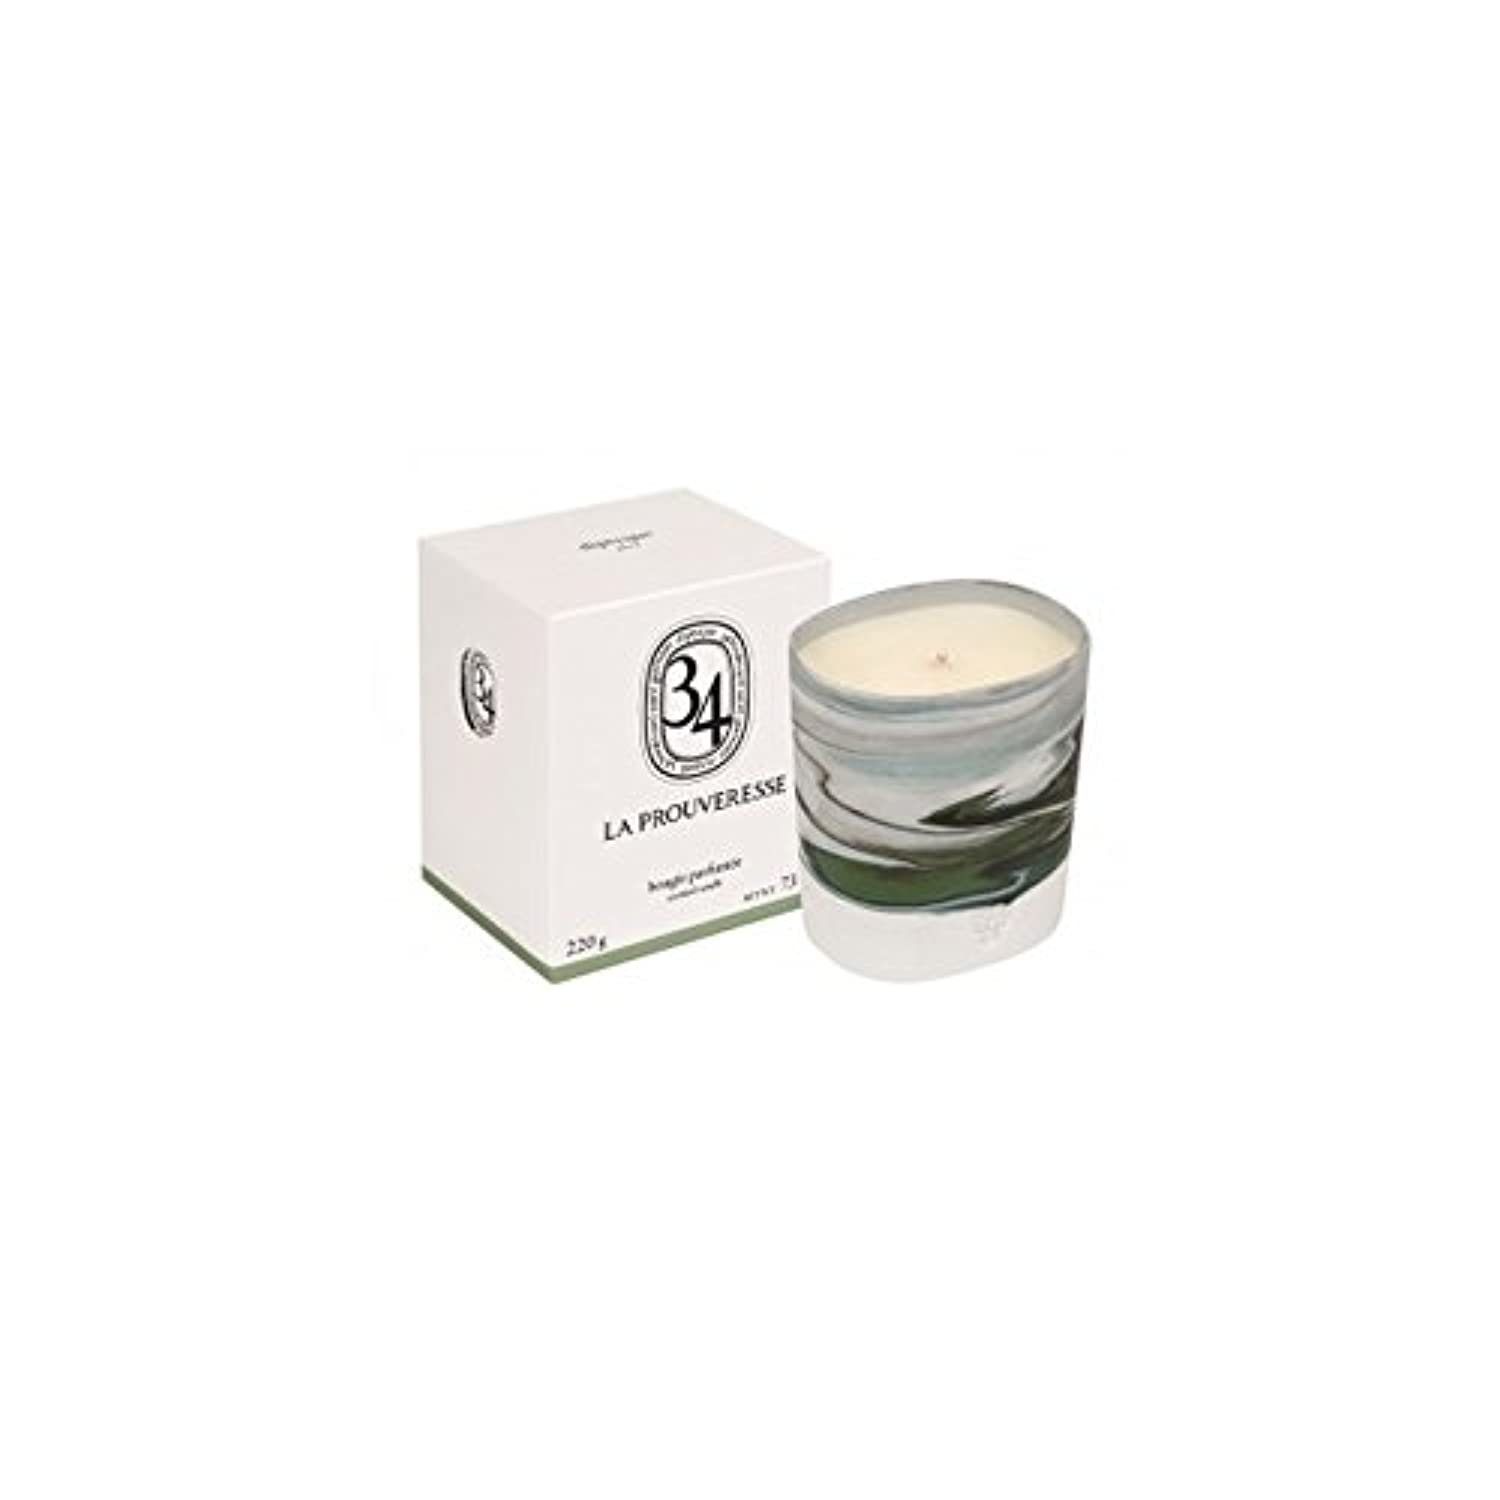 Diptyque Collection 34 La Prouveresse Scented Candle 220g (Pack of 2) - ラProuveresse Diptyqueコレクション34香りのキャンドル220...